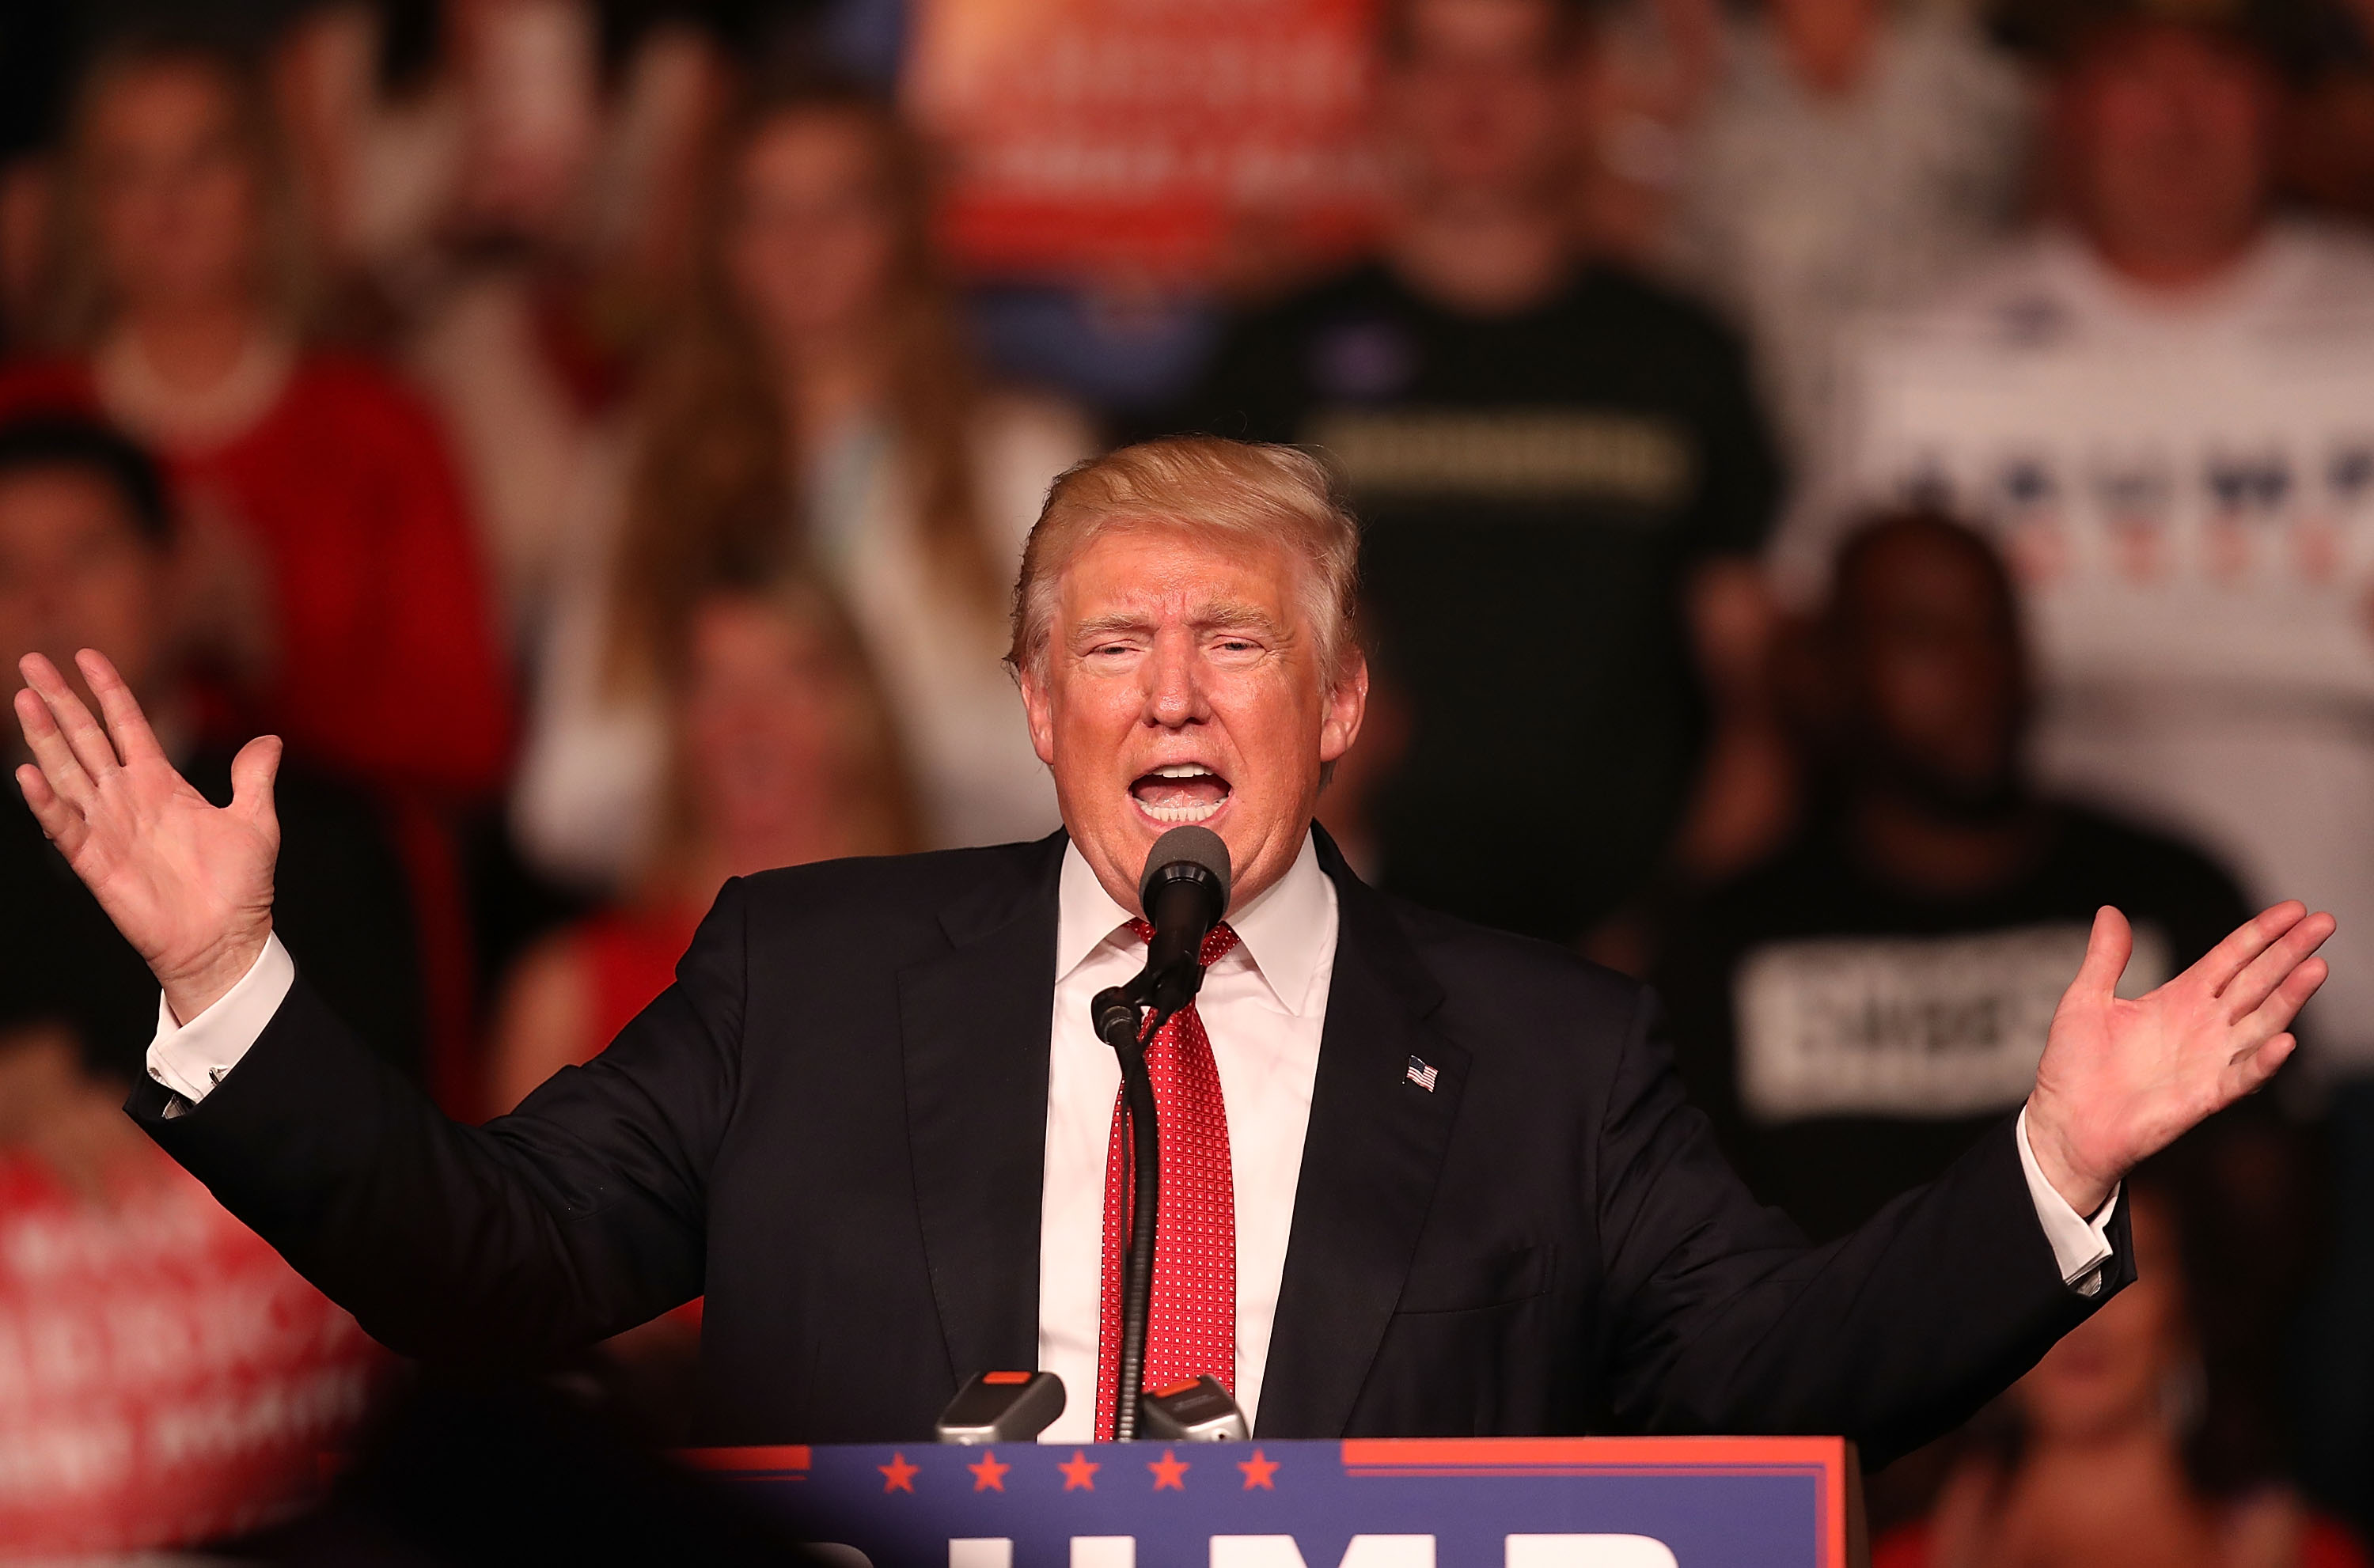 Republican presidential candidate Donald Trump speaks during a campaign rally at the Germain Arena on Sept. 19, 2016 in Estero, Florida.